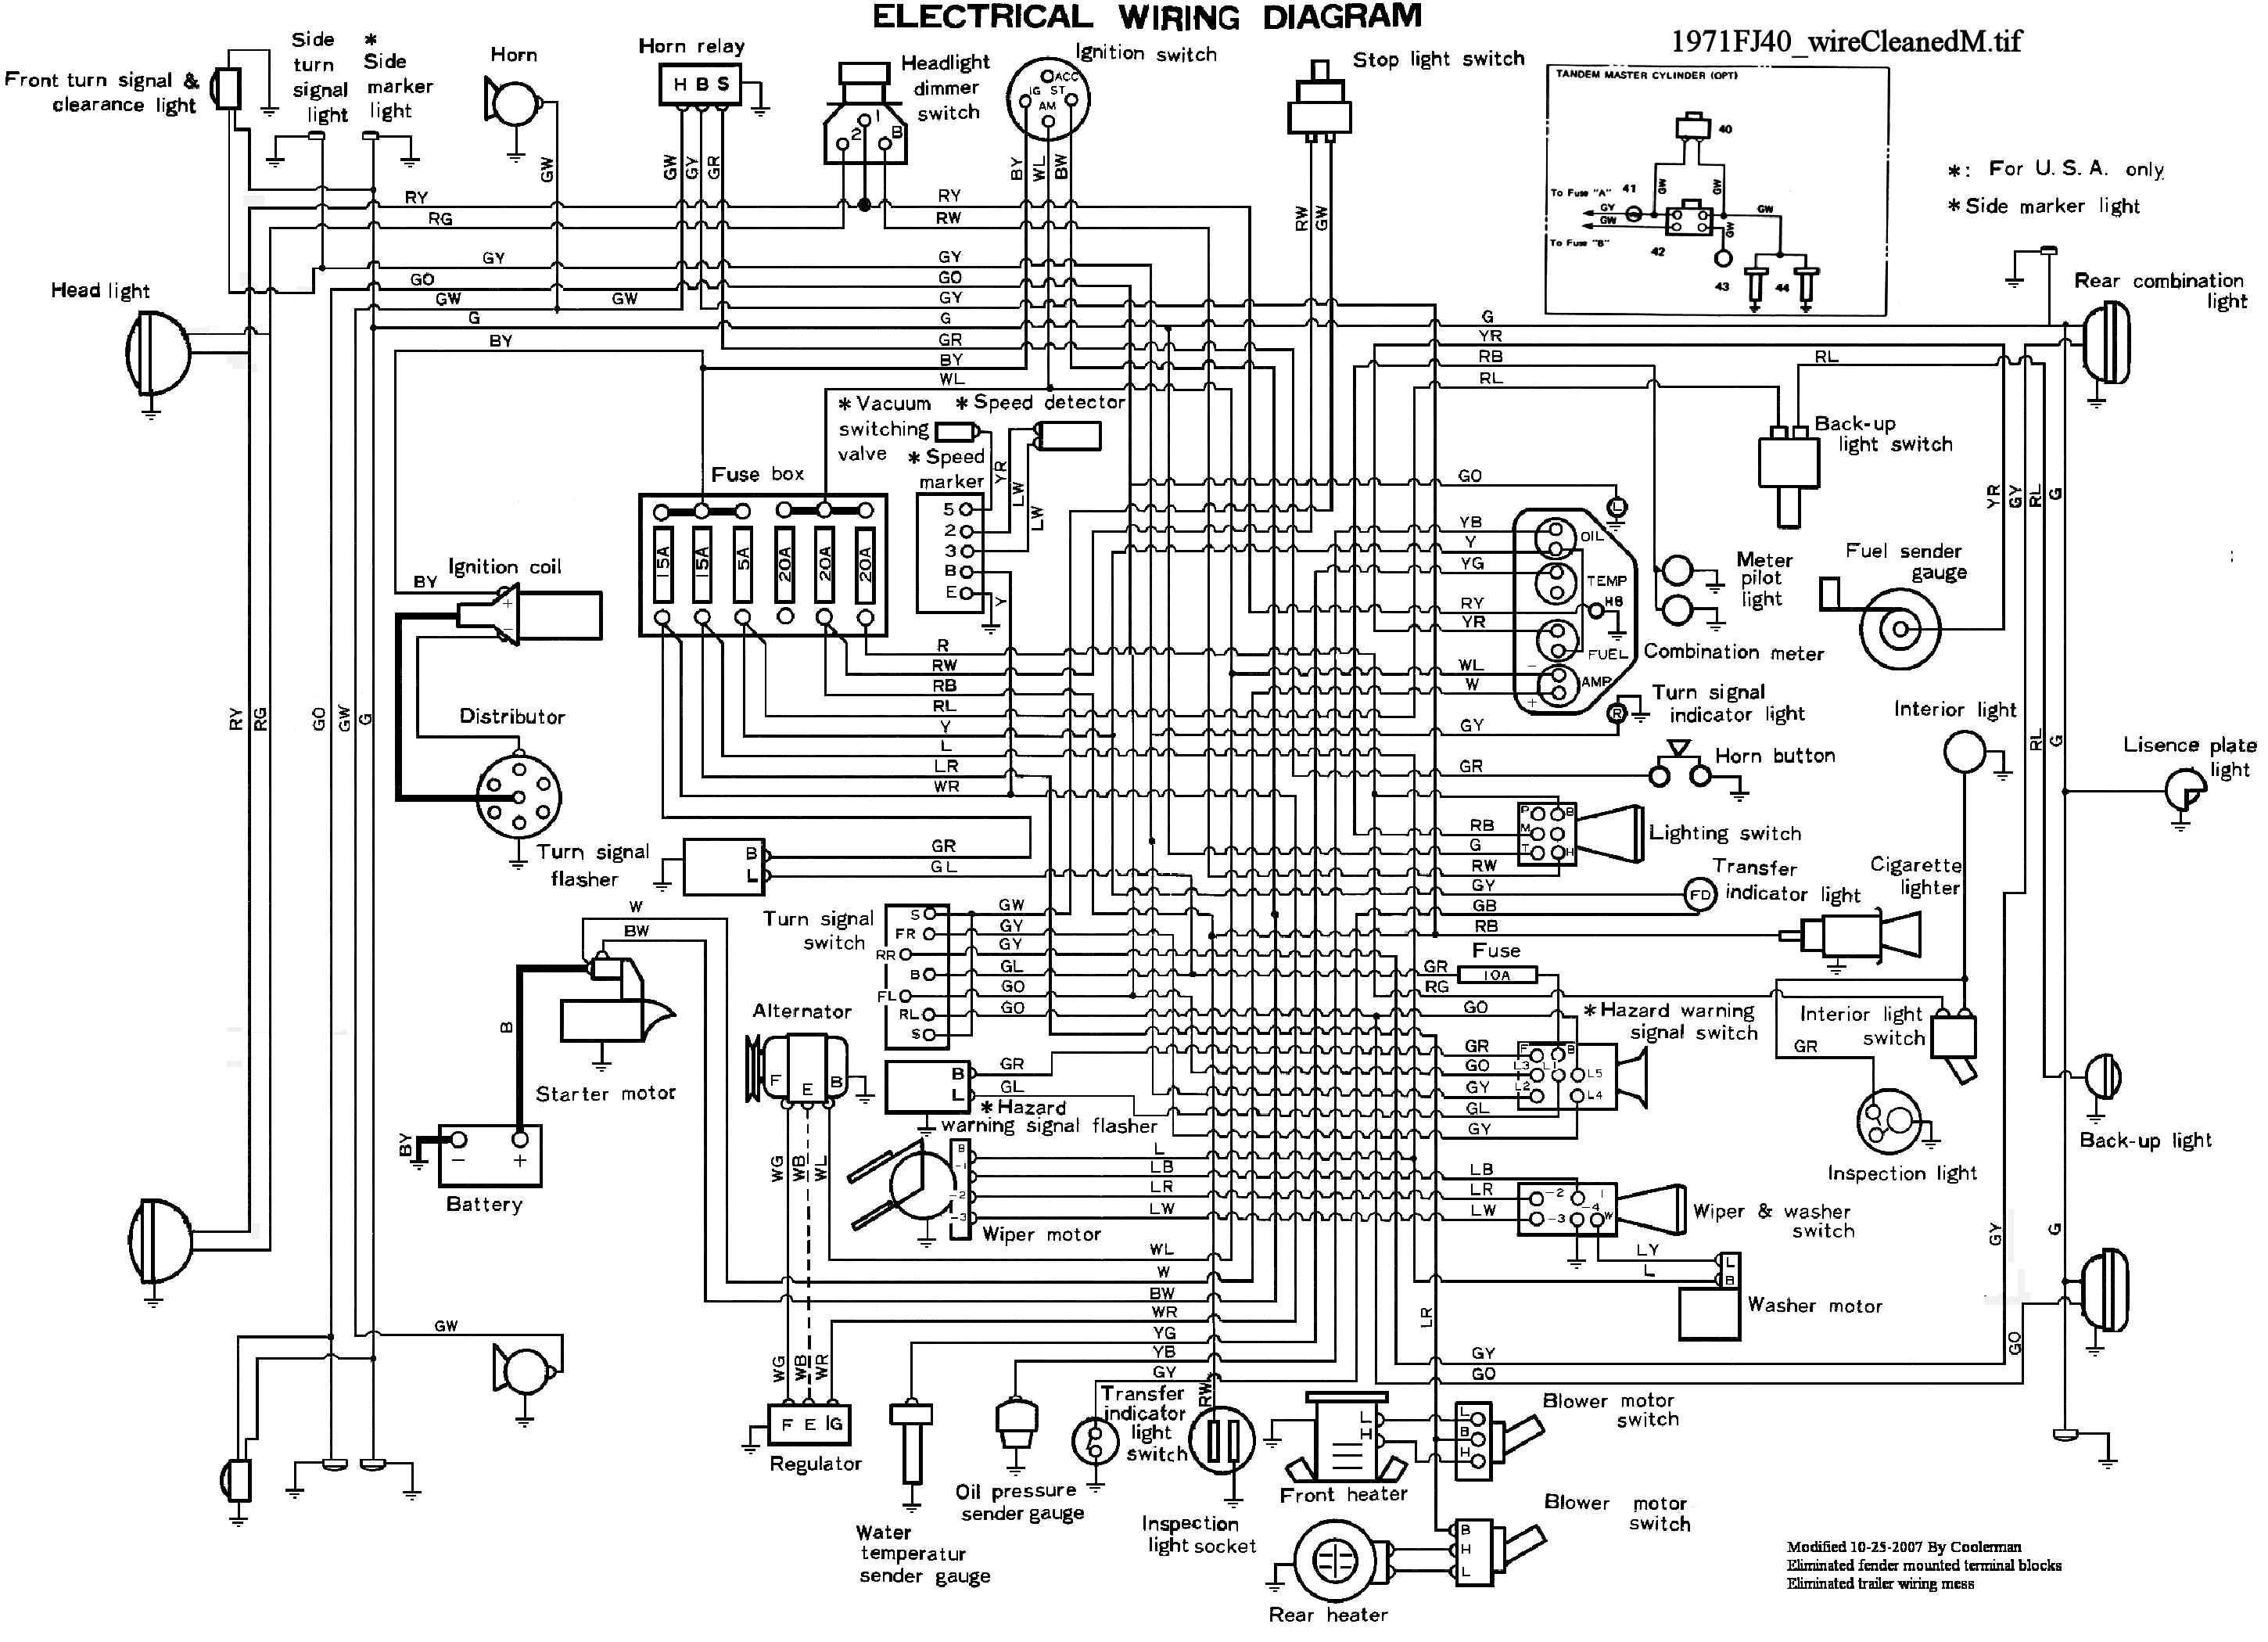 71fj40_wireCleanedM fj40 wiring diagram fj40 dash diagram \u2022 wiring diagrams j squared co land cruiser 100 electrical wiring diagram at nearapp.co